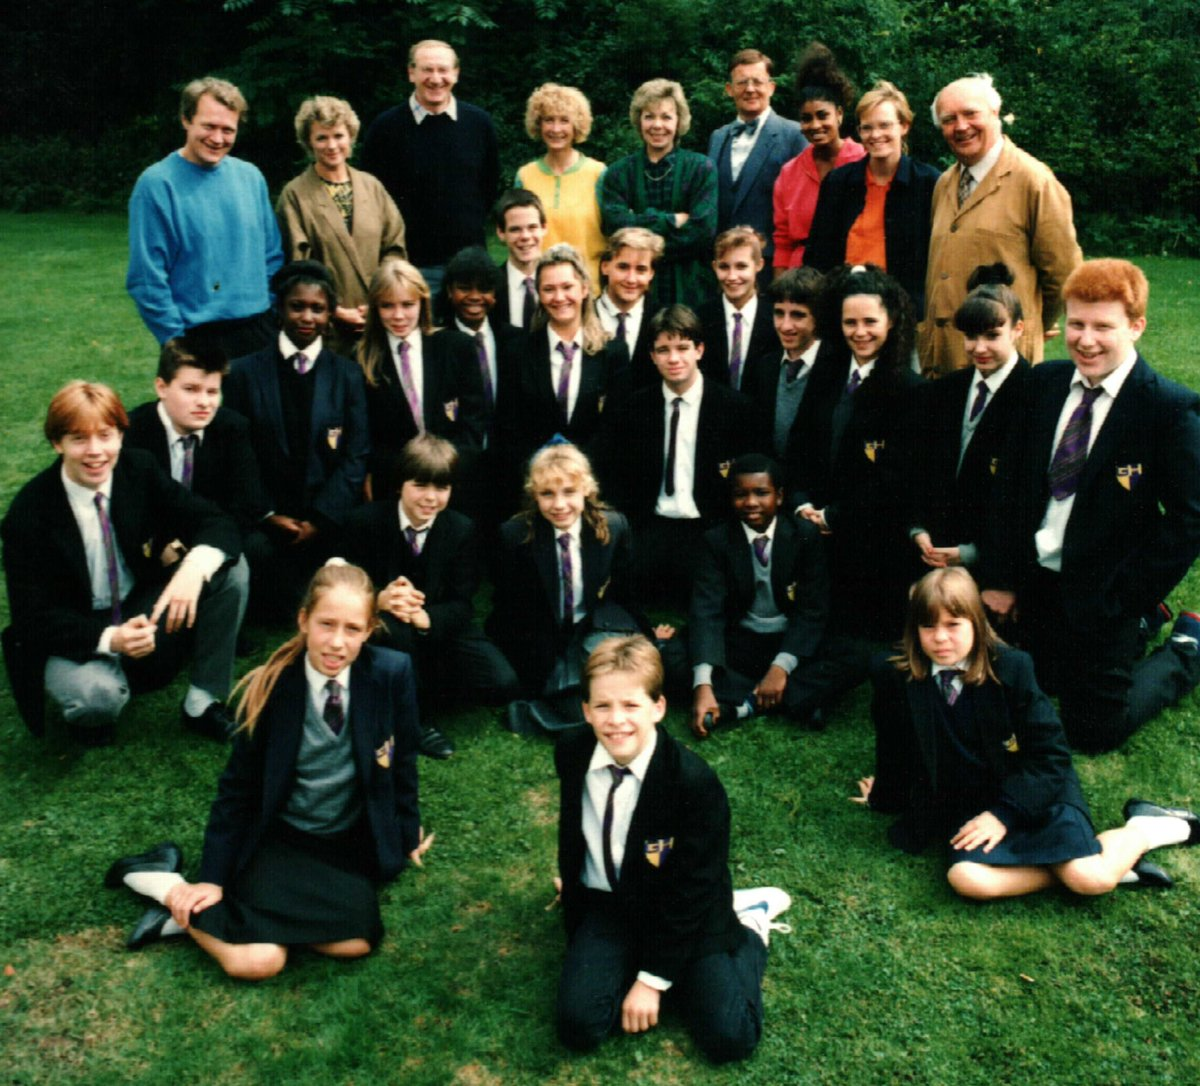 grange hill single catholic girls The boys are wearing tam o' shanters with pom poms, whereas the girls have starched aprons with gloves, said erica davies, the museum's director  via britney spears and grange hill,.